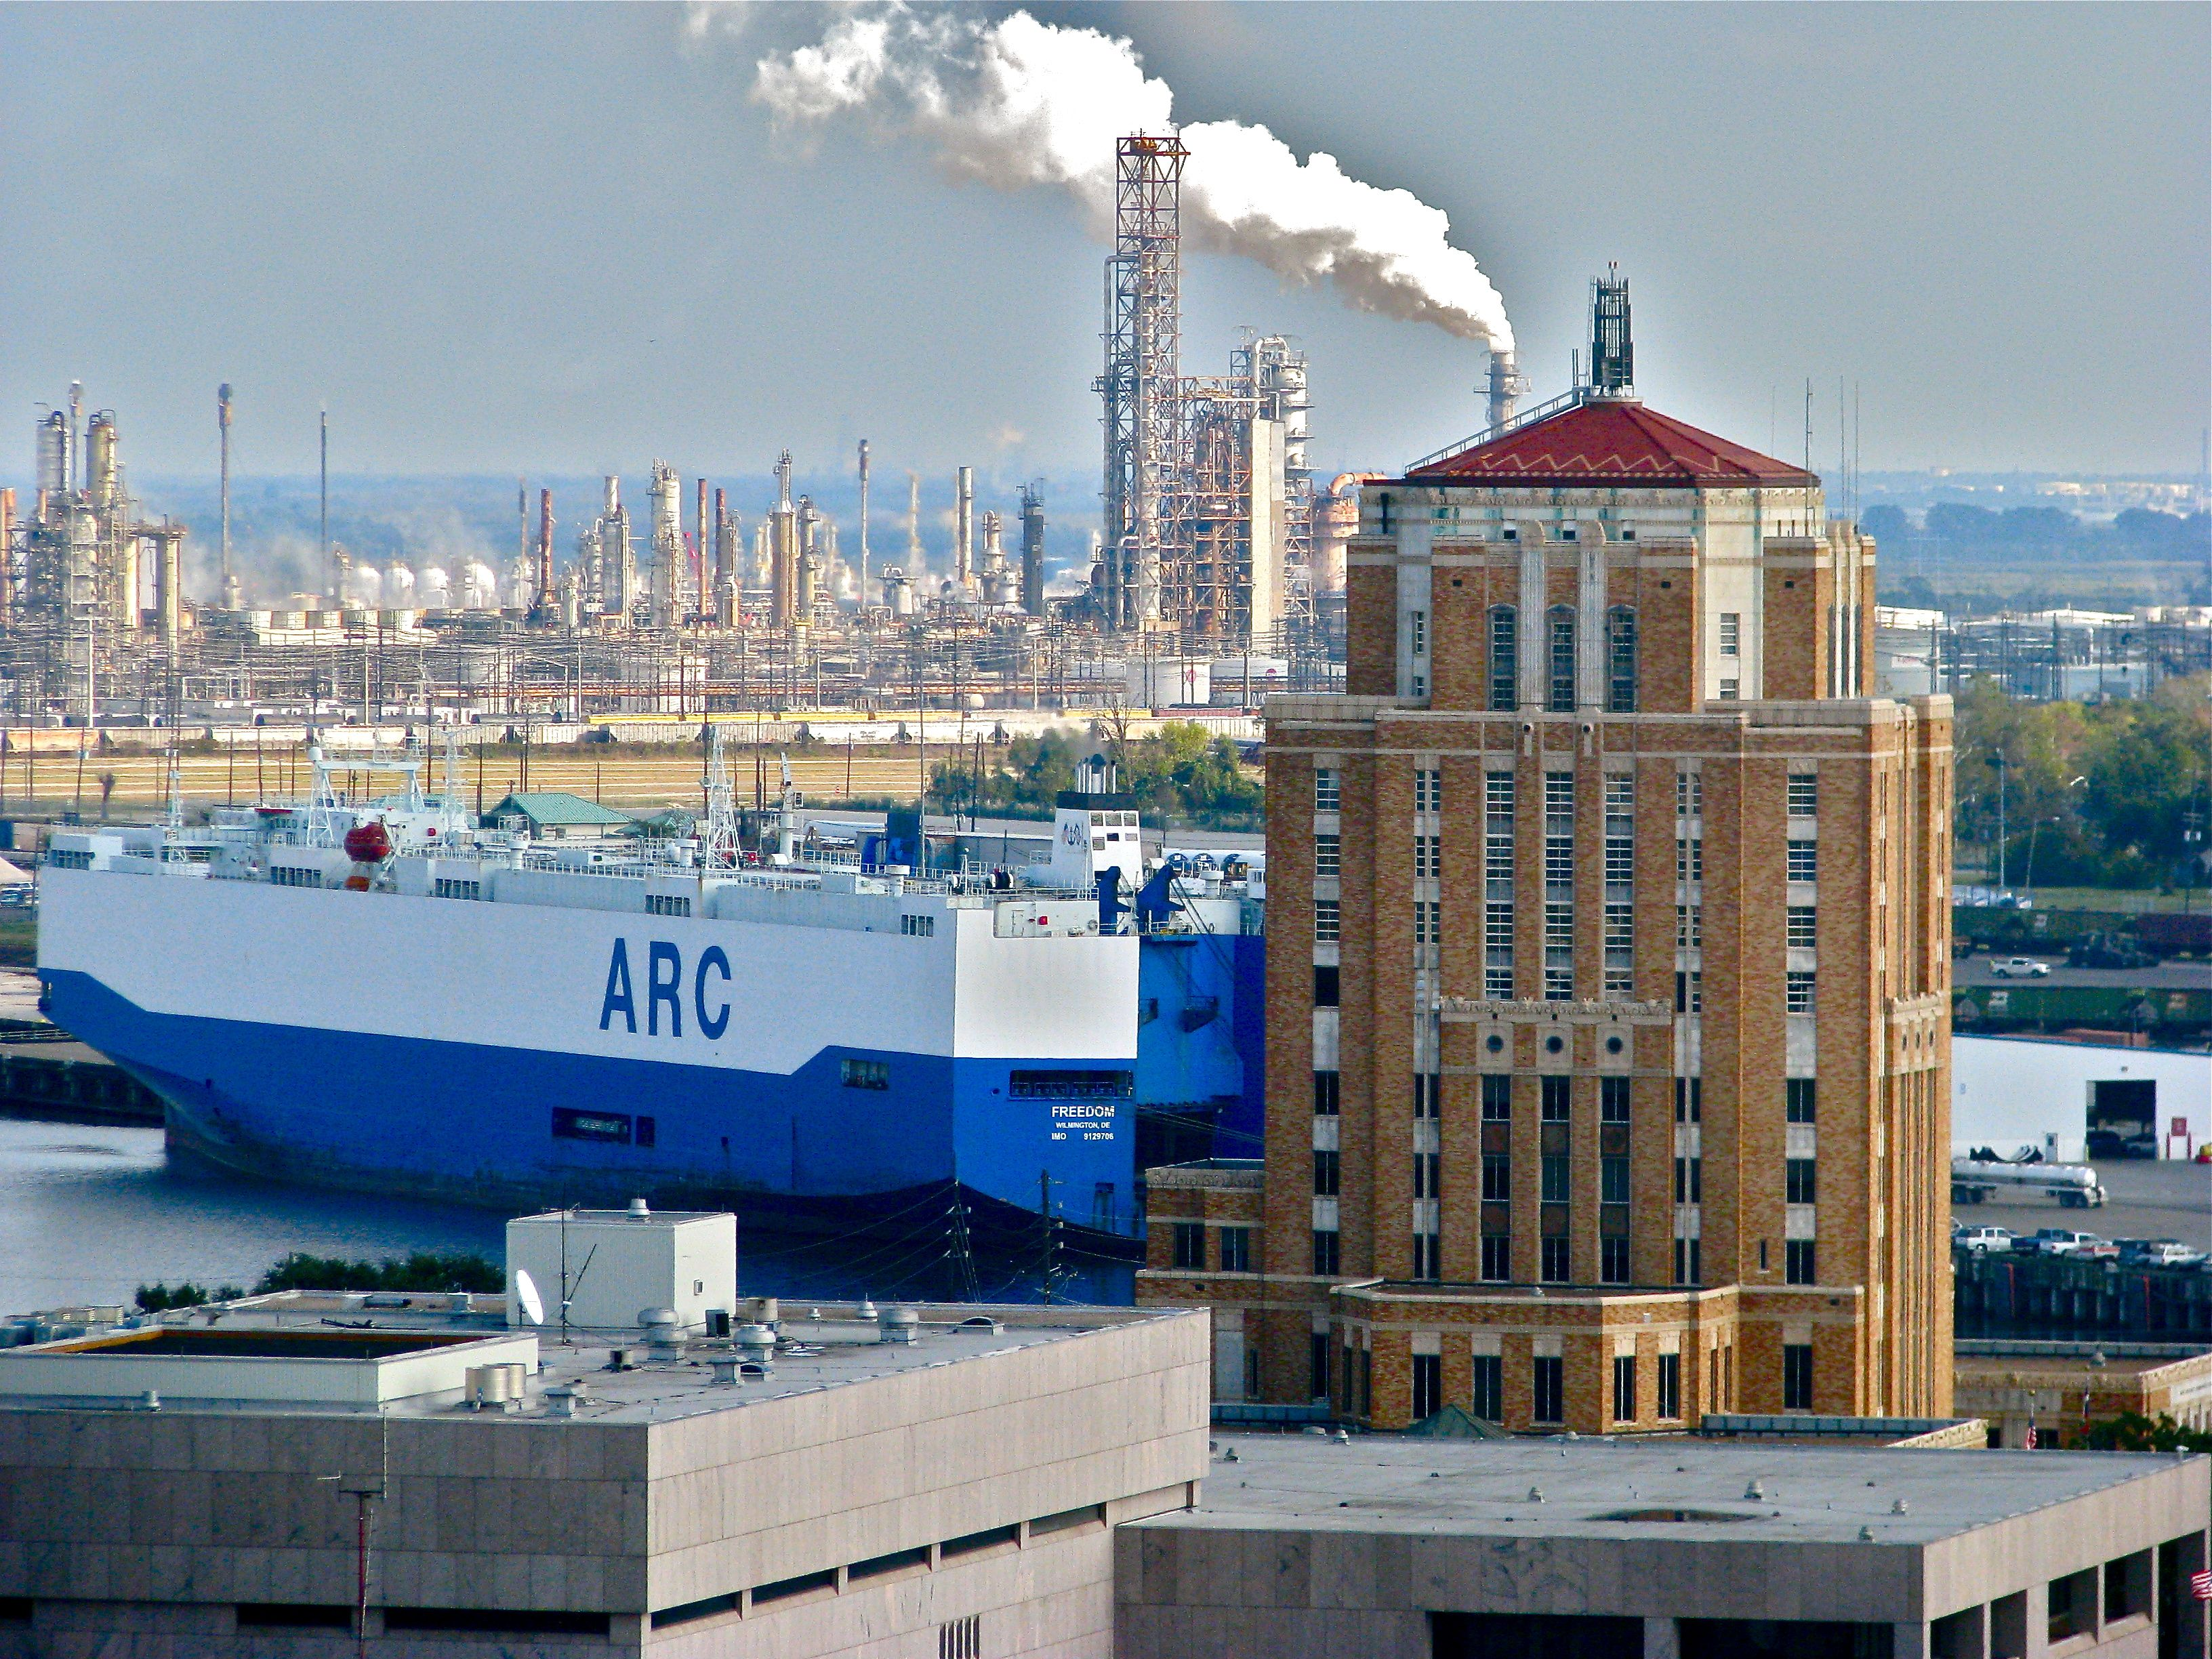 Refineries, Port of Beaumont and the Jefferson County Courthouse